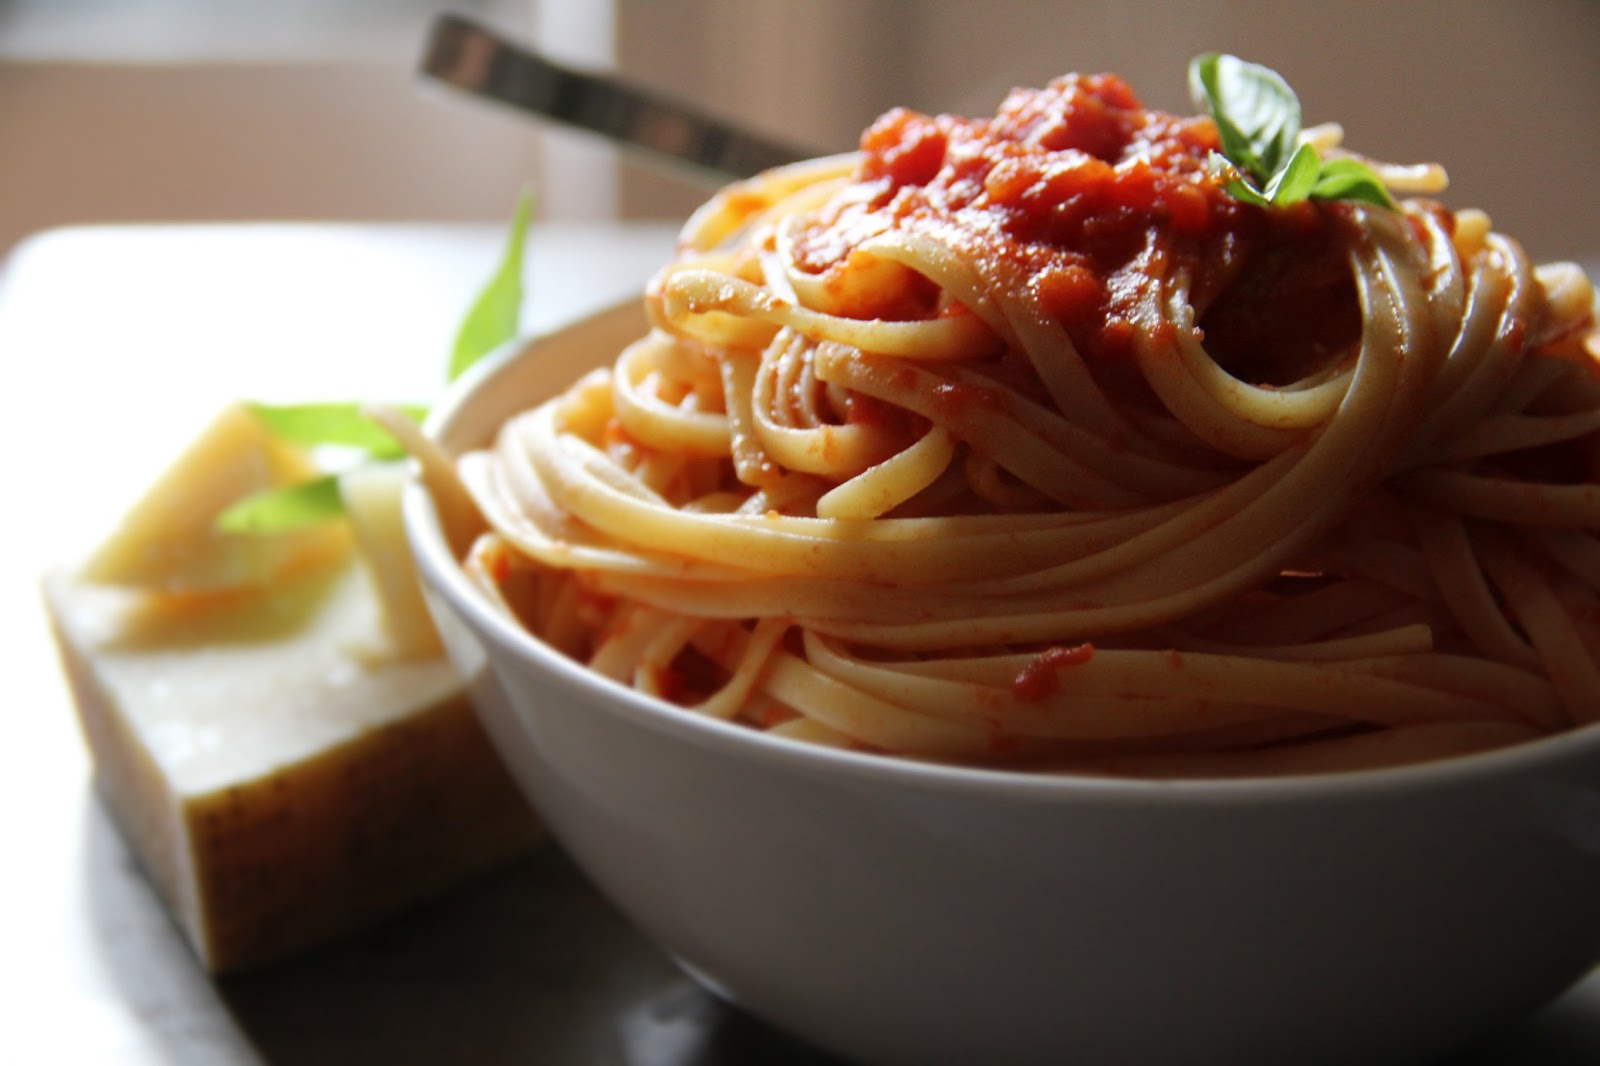 Brooklyn Salt : Tomato Sauce with Onion and Butter